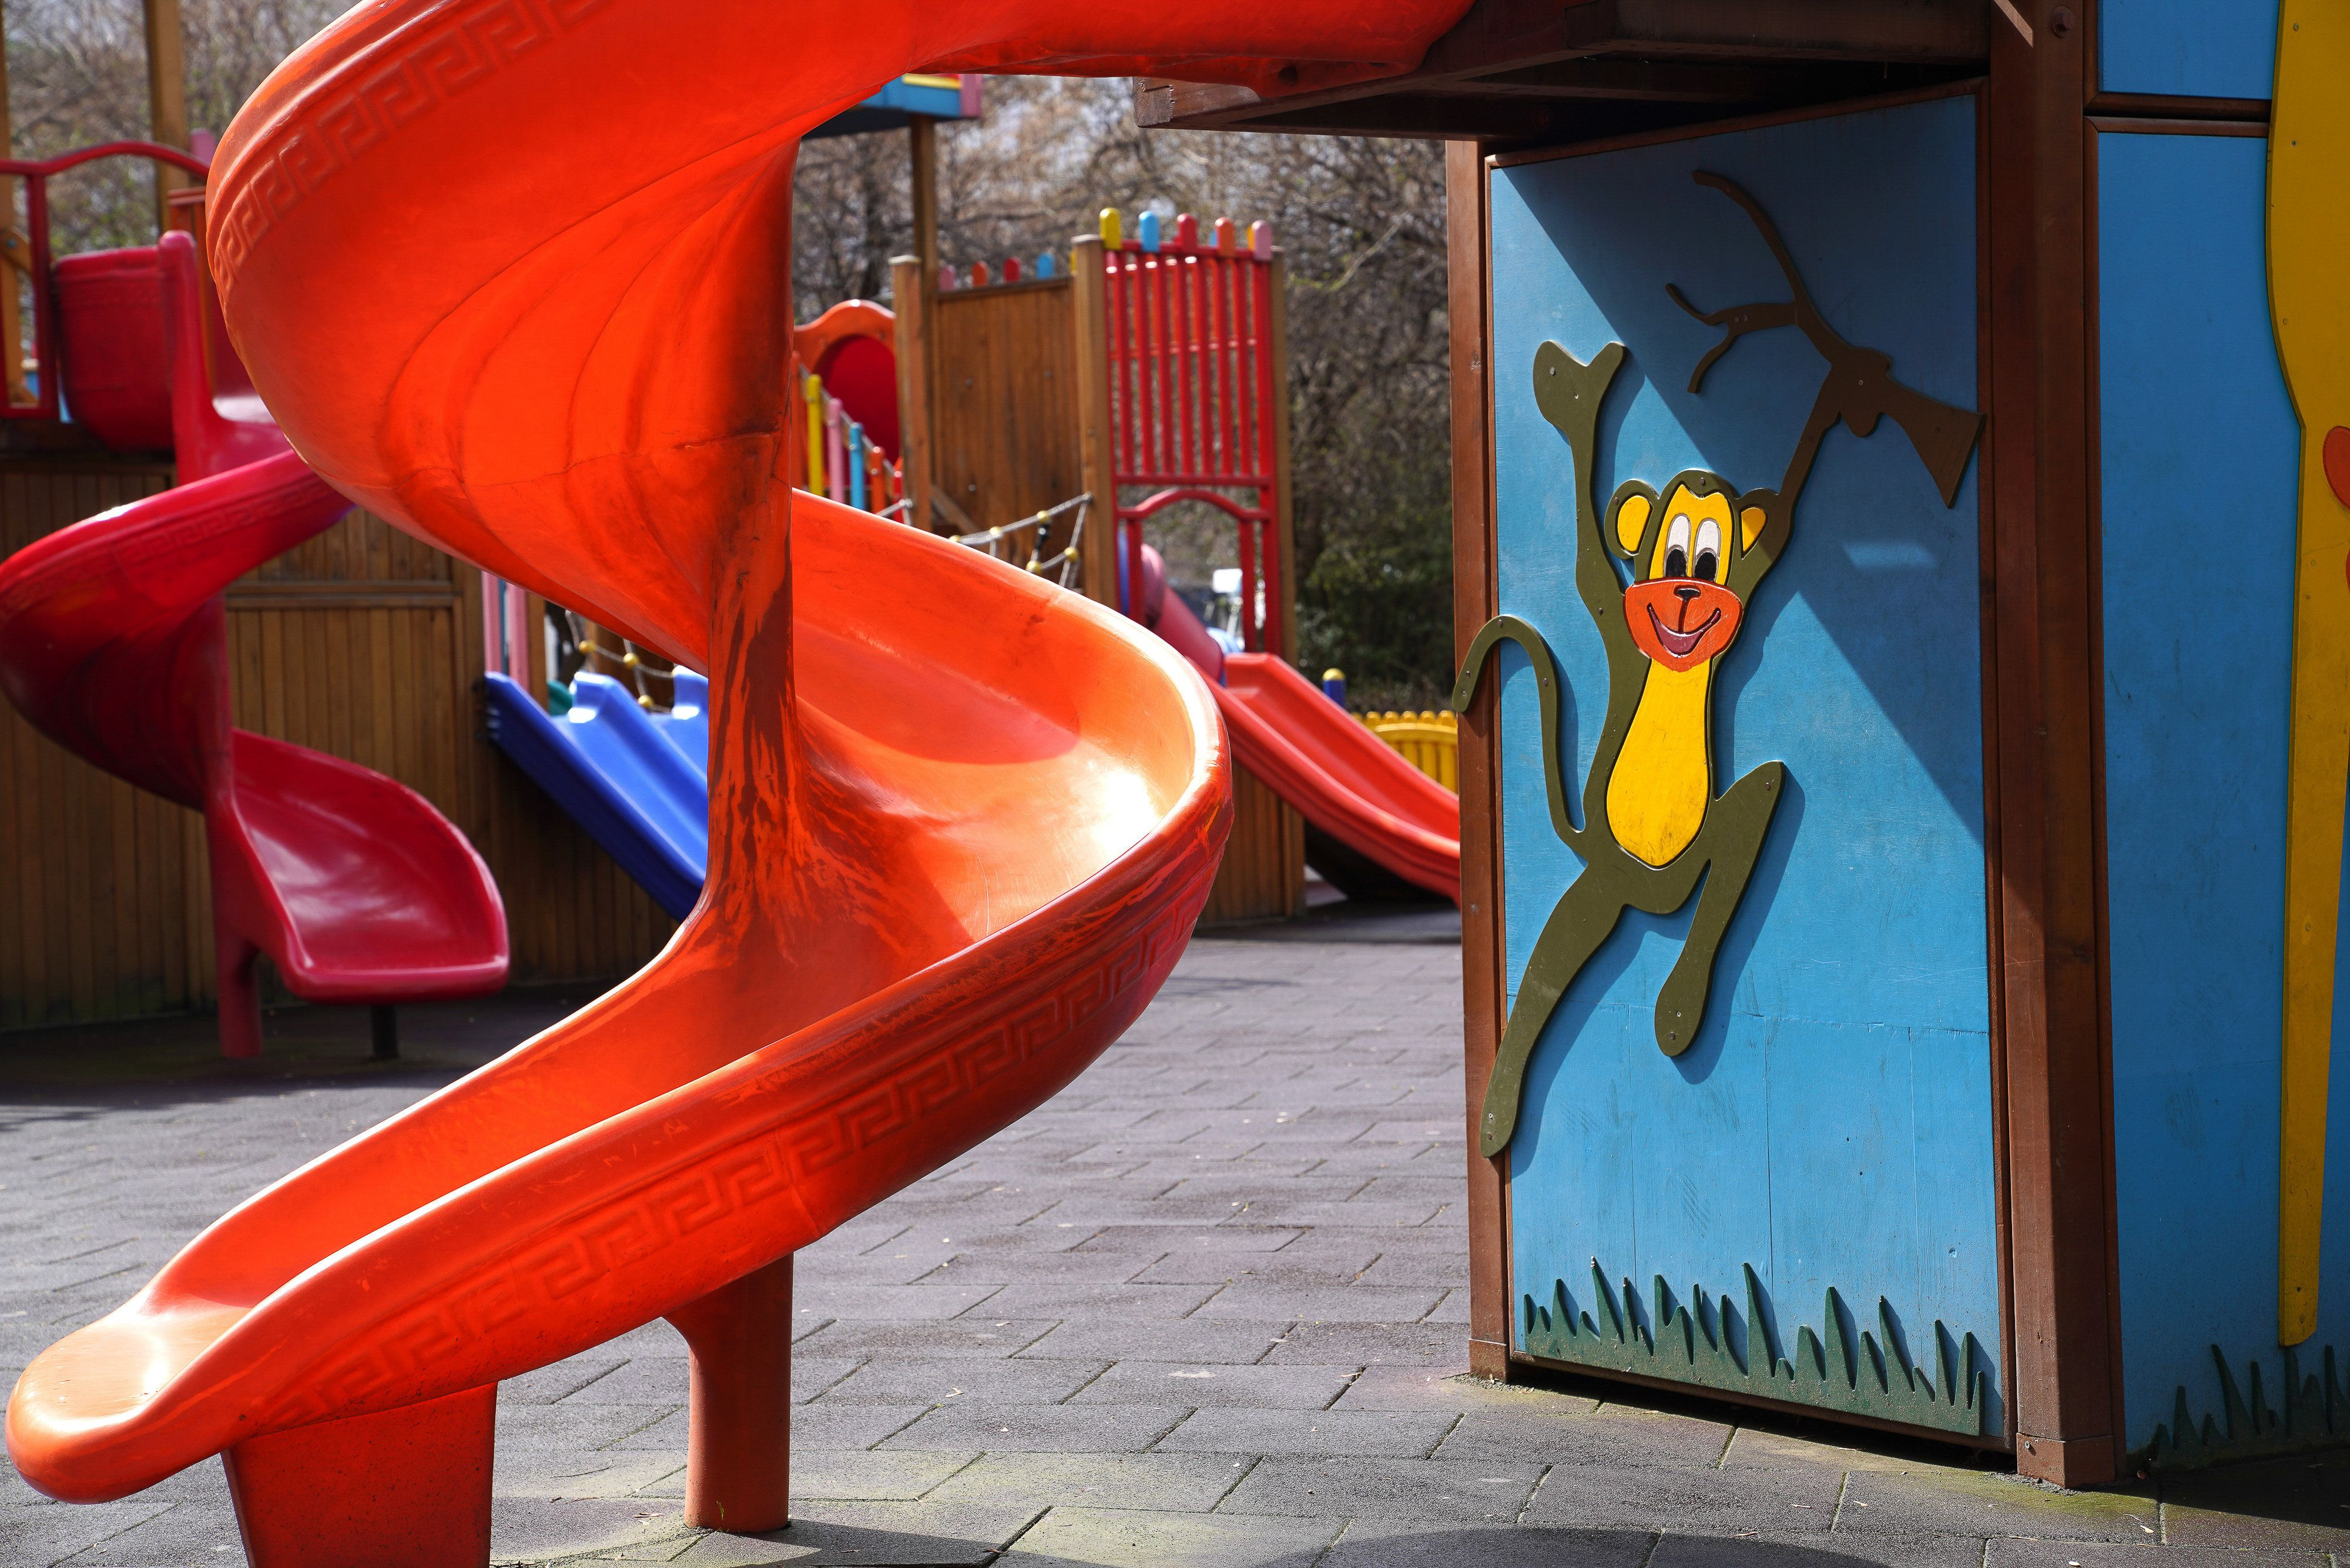 Parents Warned To Be Cautious Of Slides In Hot Weather After 4-Year-Old Is Severely